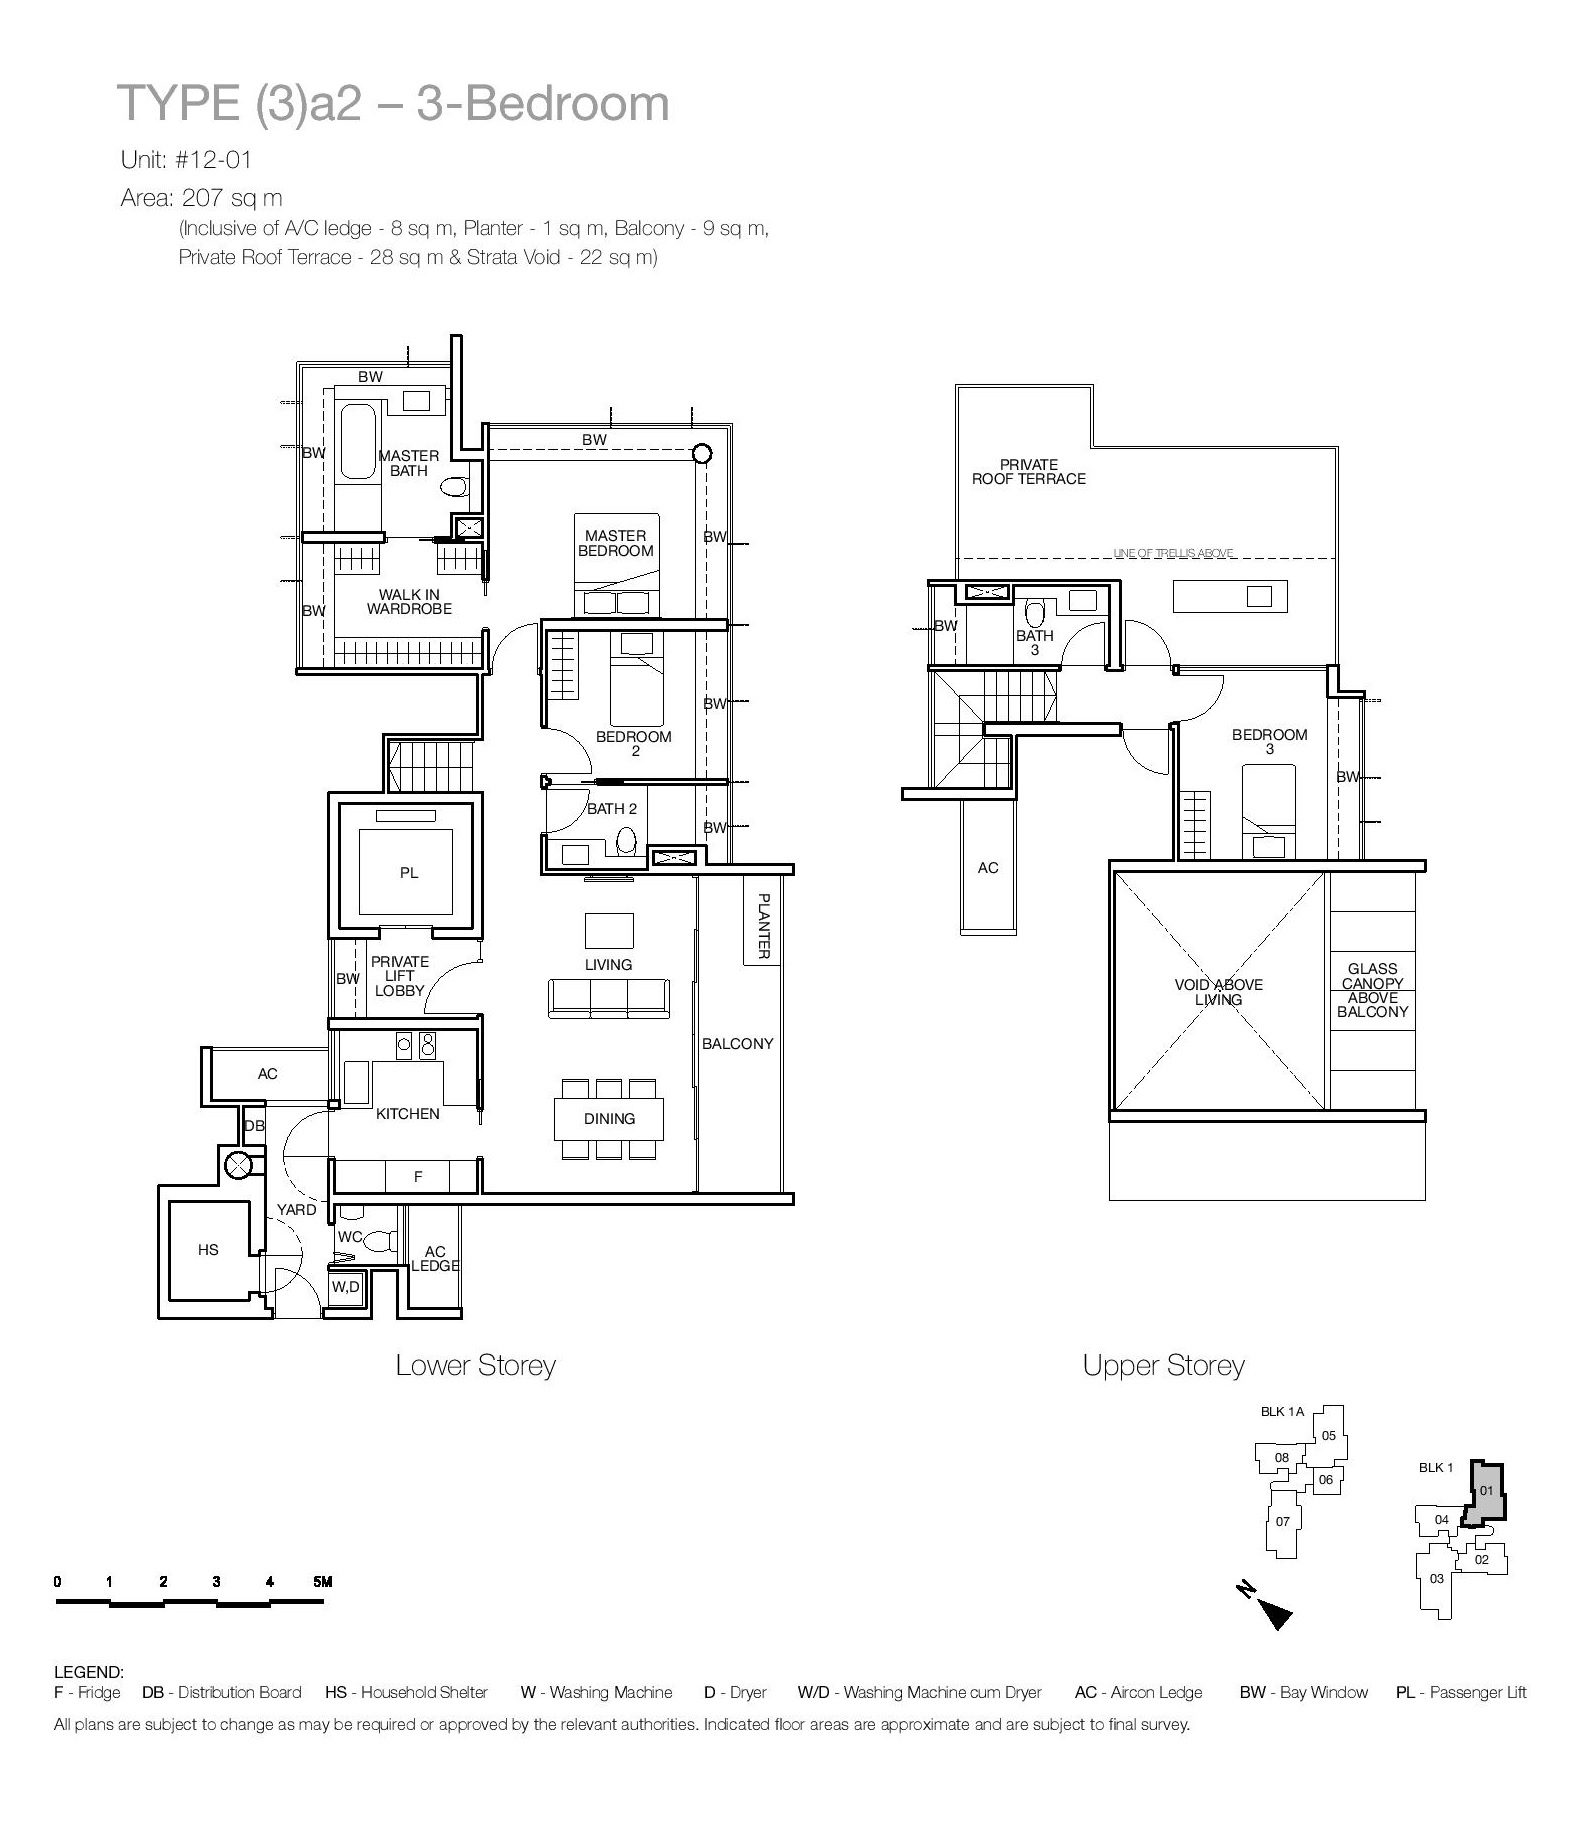 One Balmoral 3 Bedroom Floor Type (3)a2 Plans